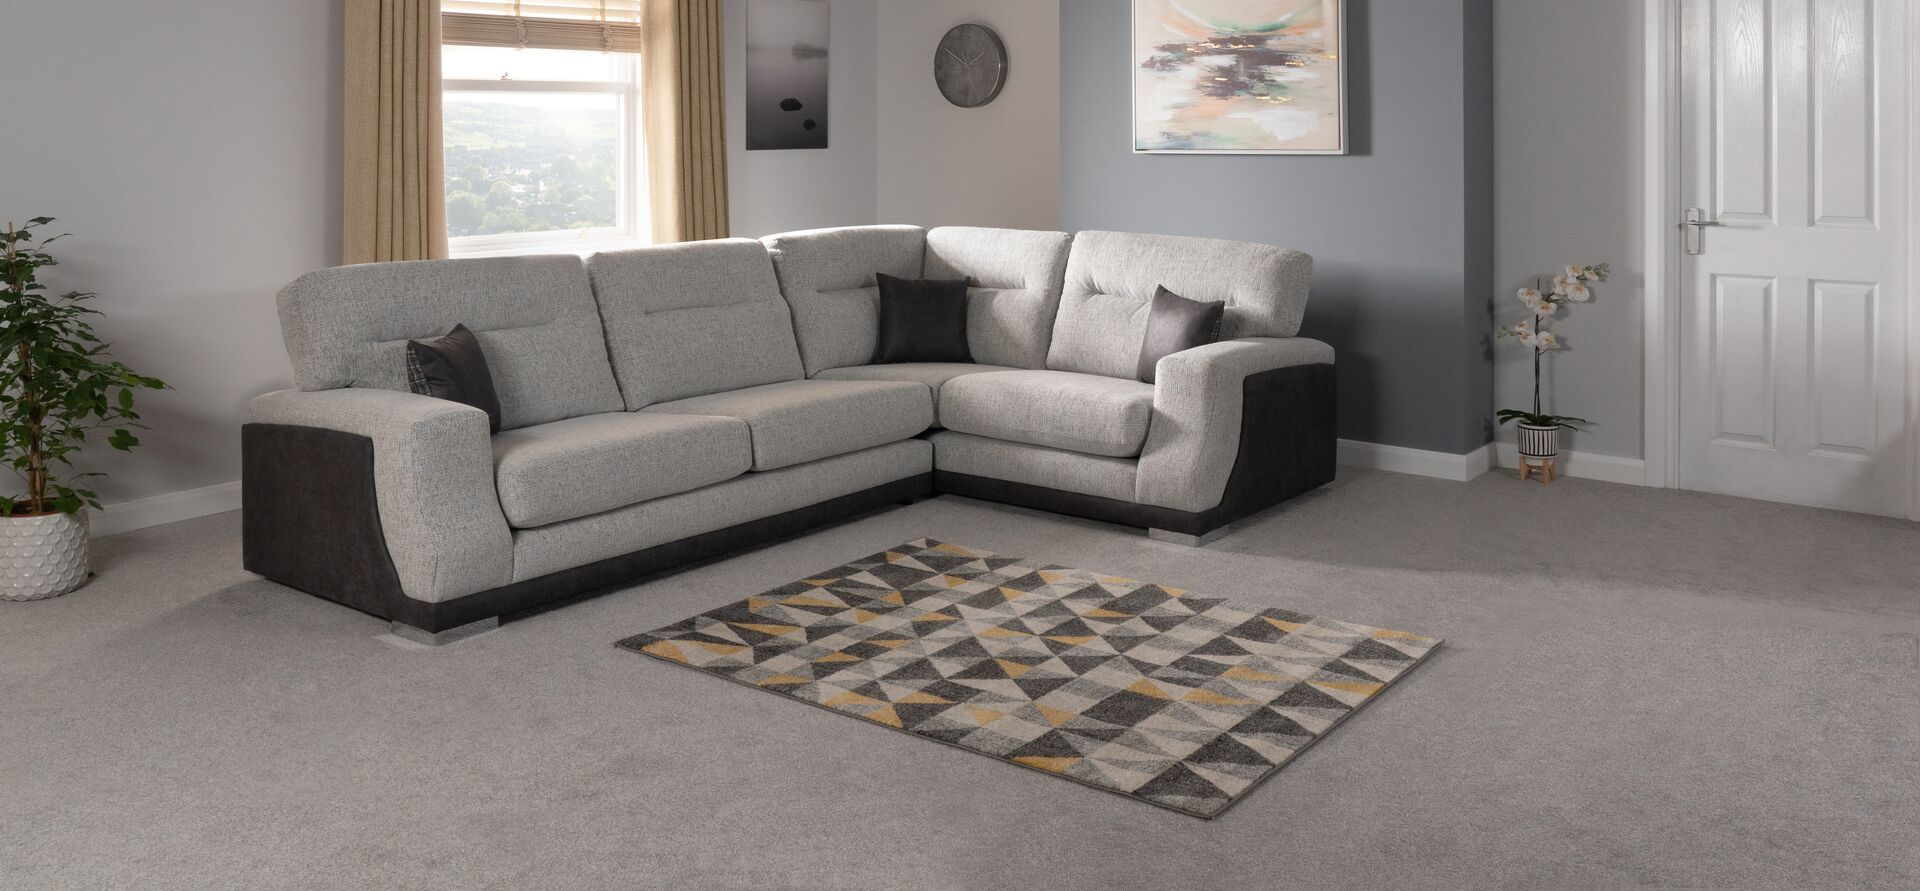 Delphi 2 Corner 1 Standard Back Scs Flooring Shops Sofa Shop Living Room Storage